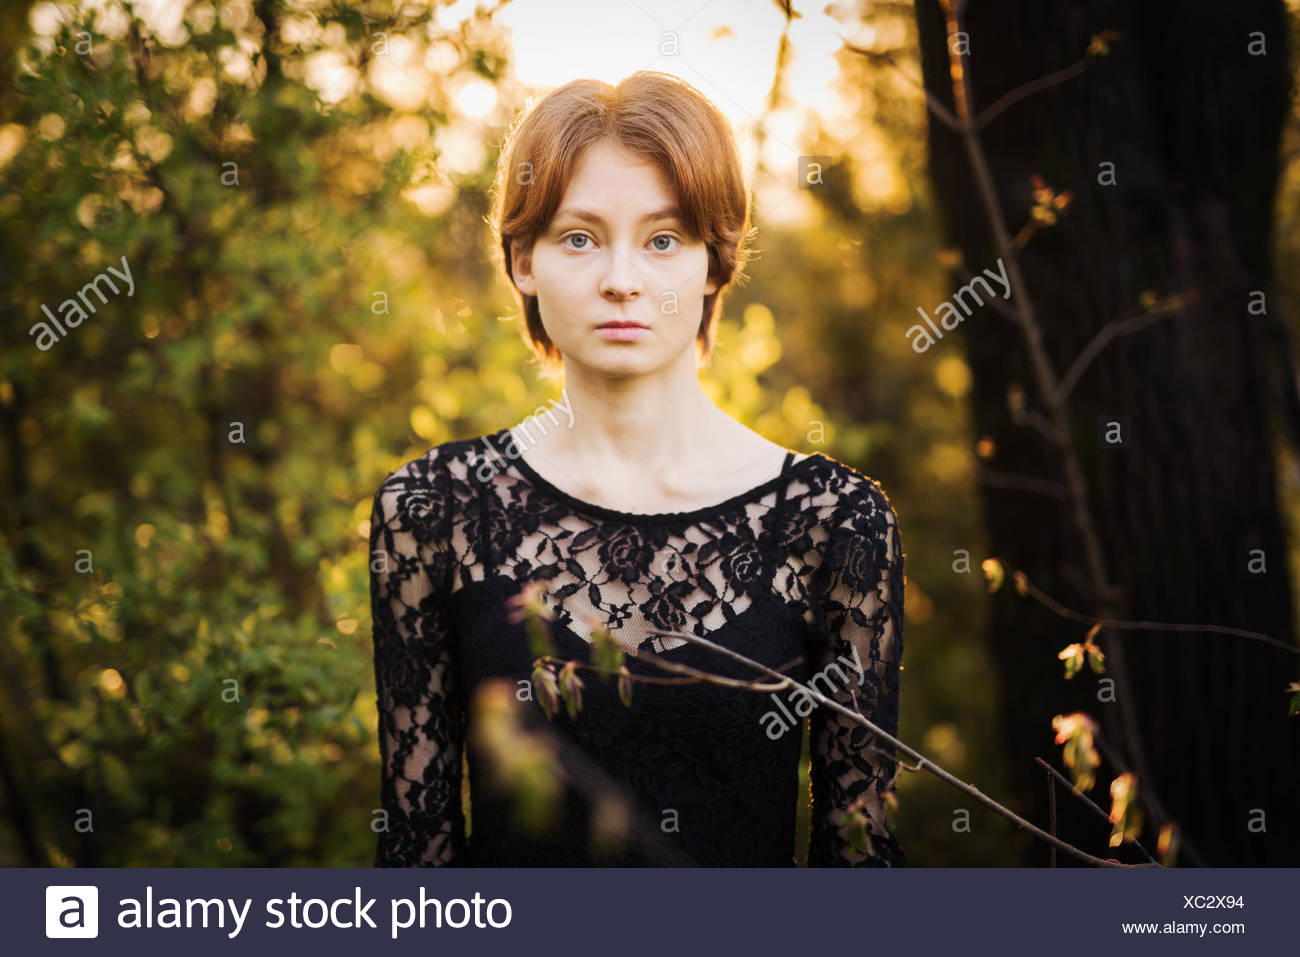 Finland, Southwest Finland, Portrait of young woman in forest - Stock Image